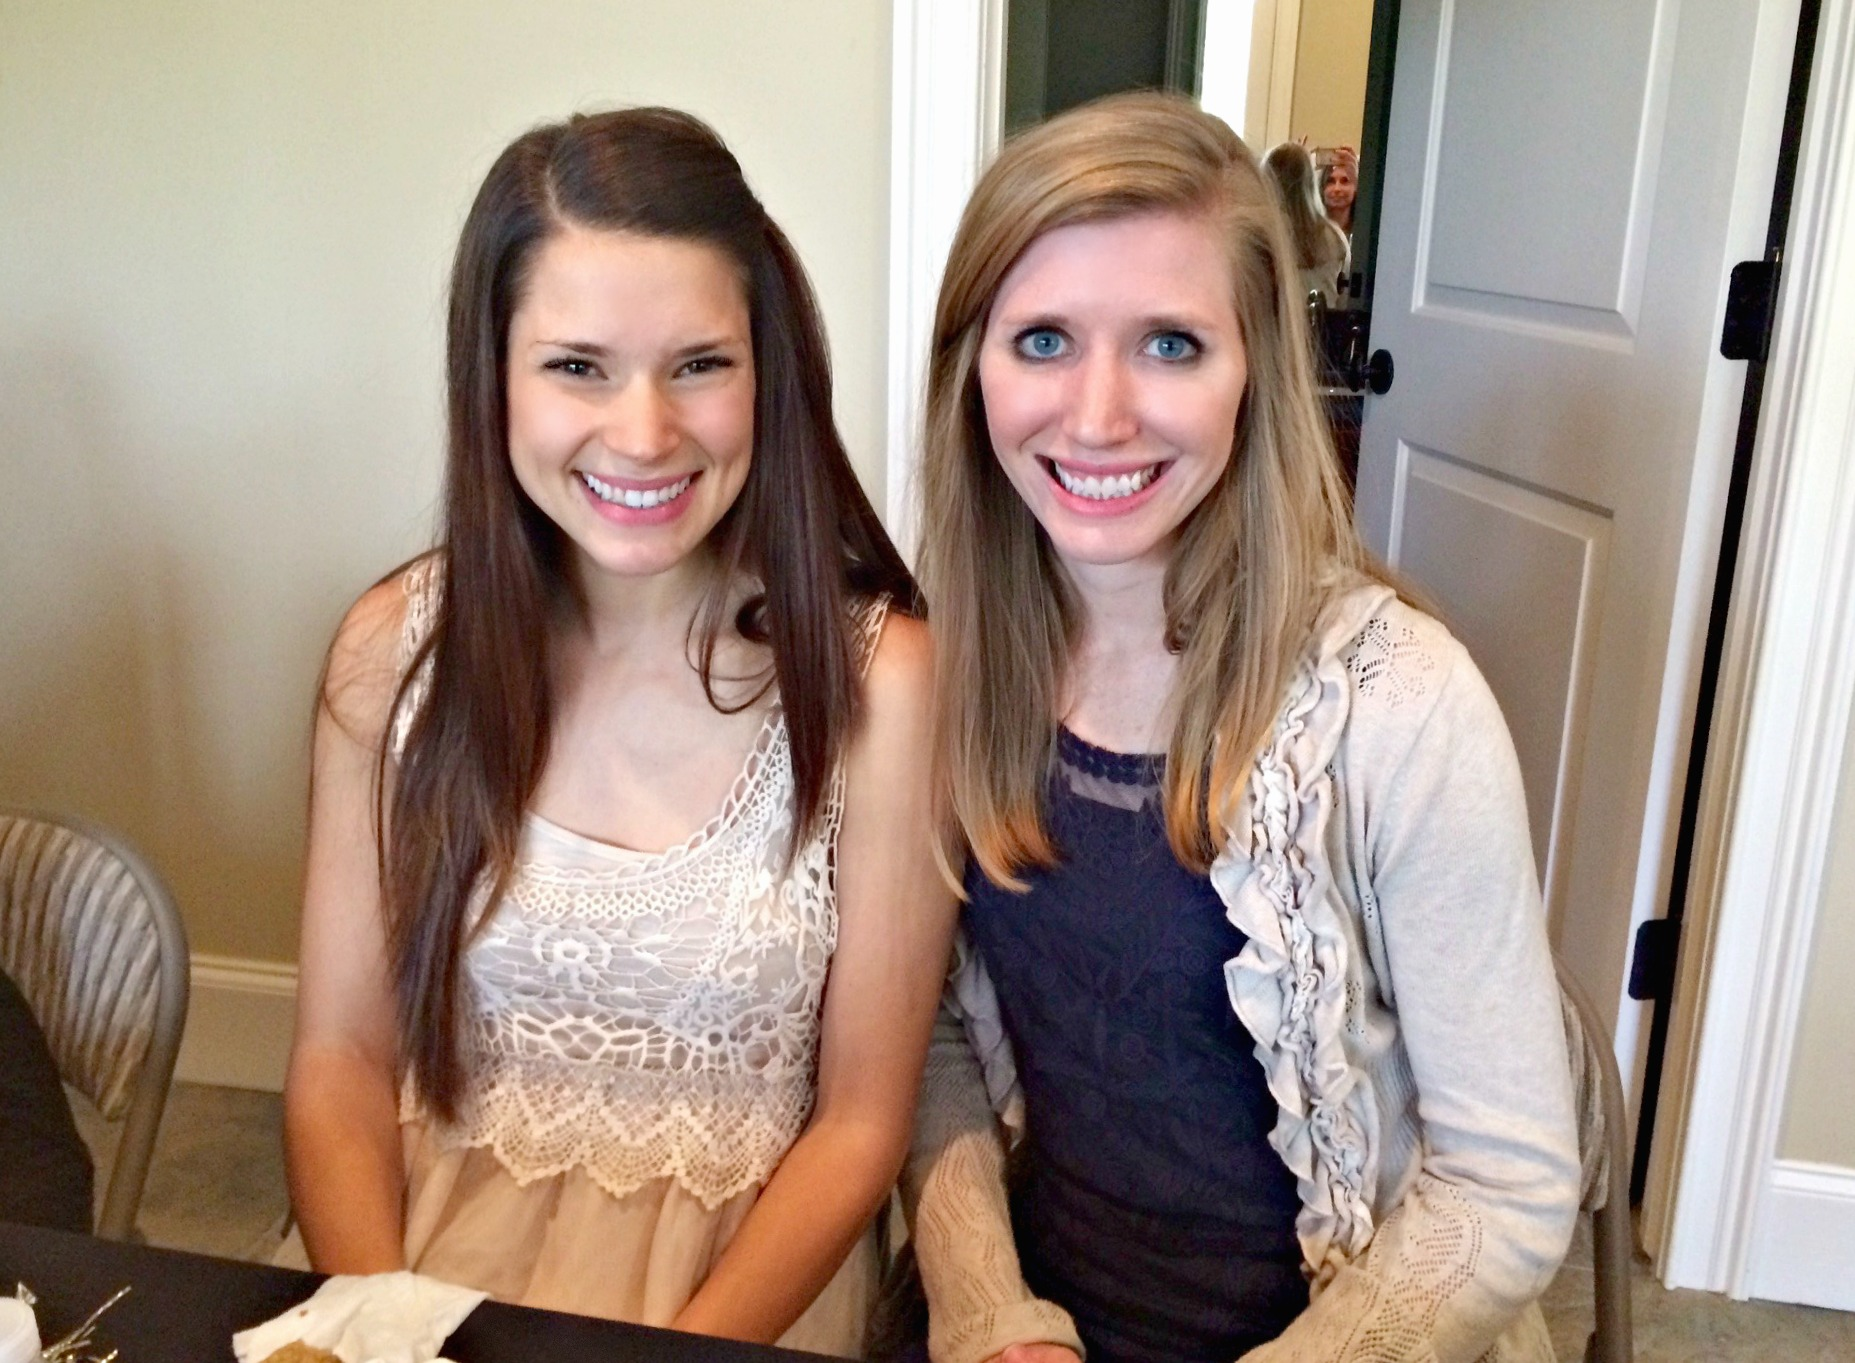 alex and emily at bridal shower